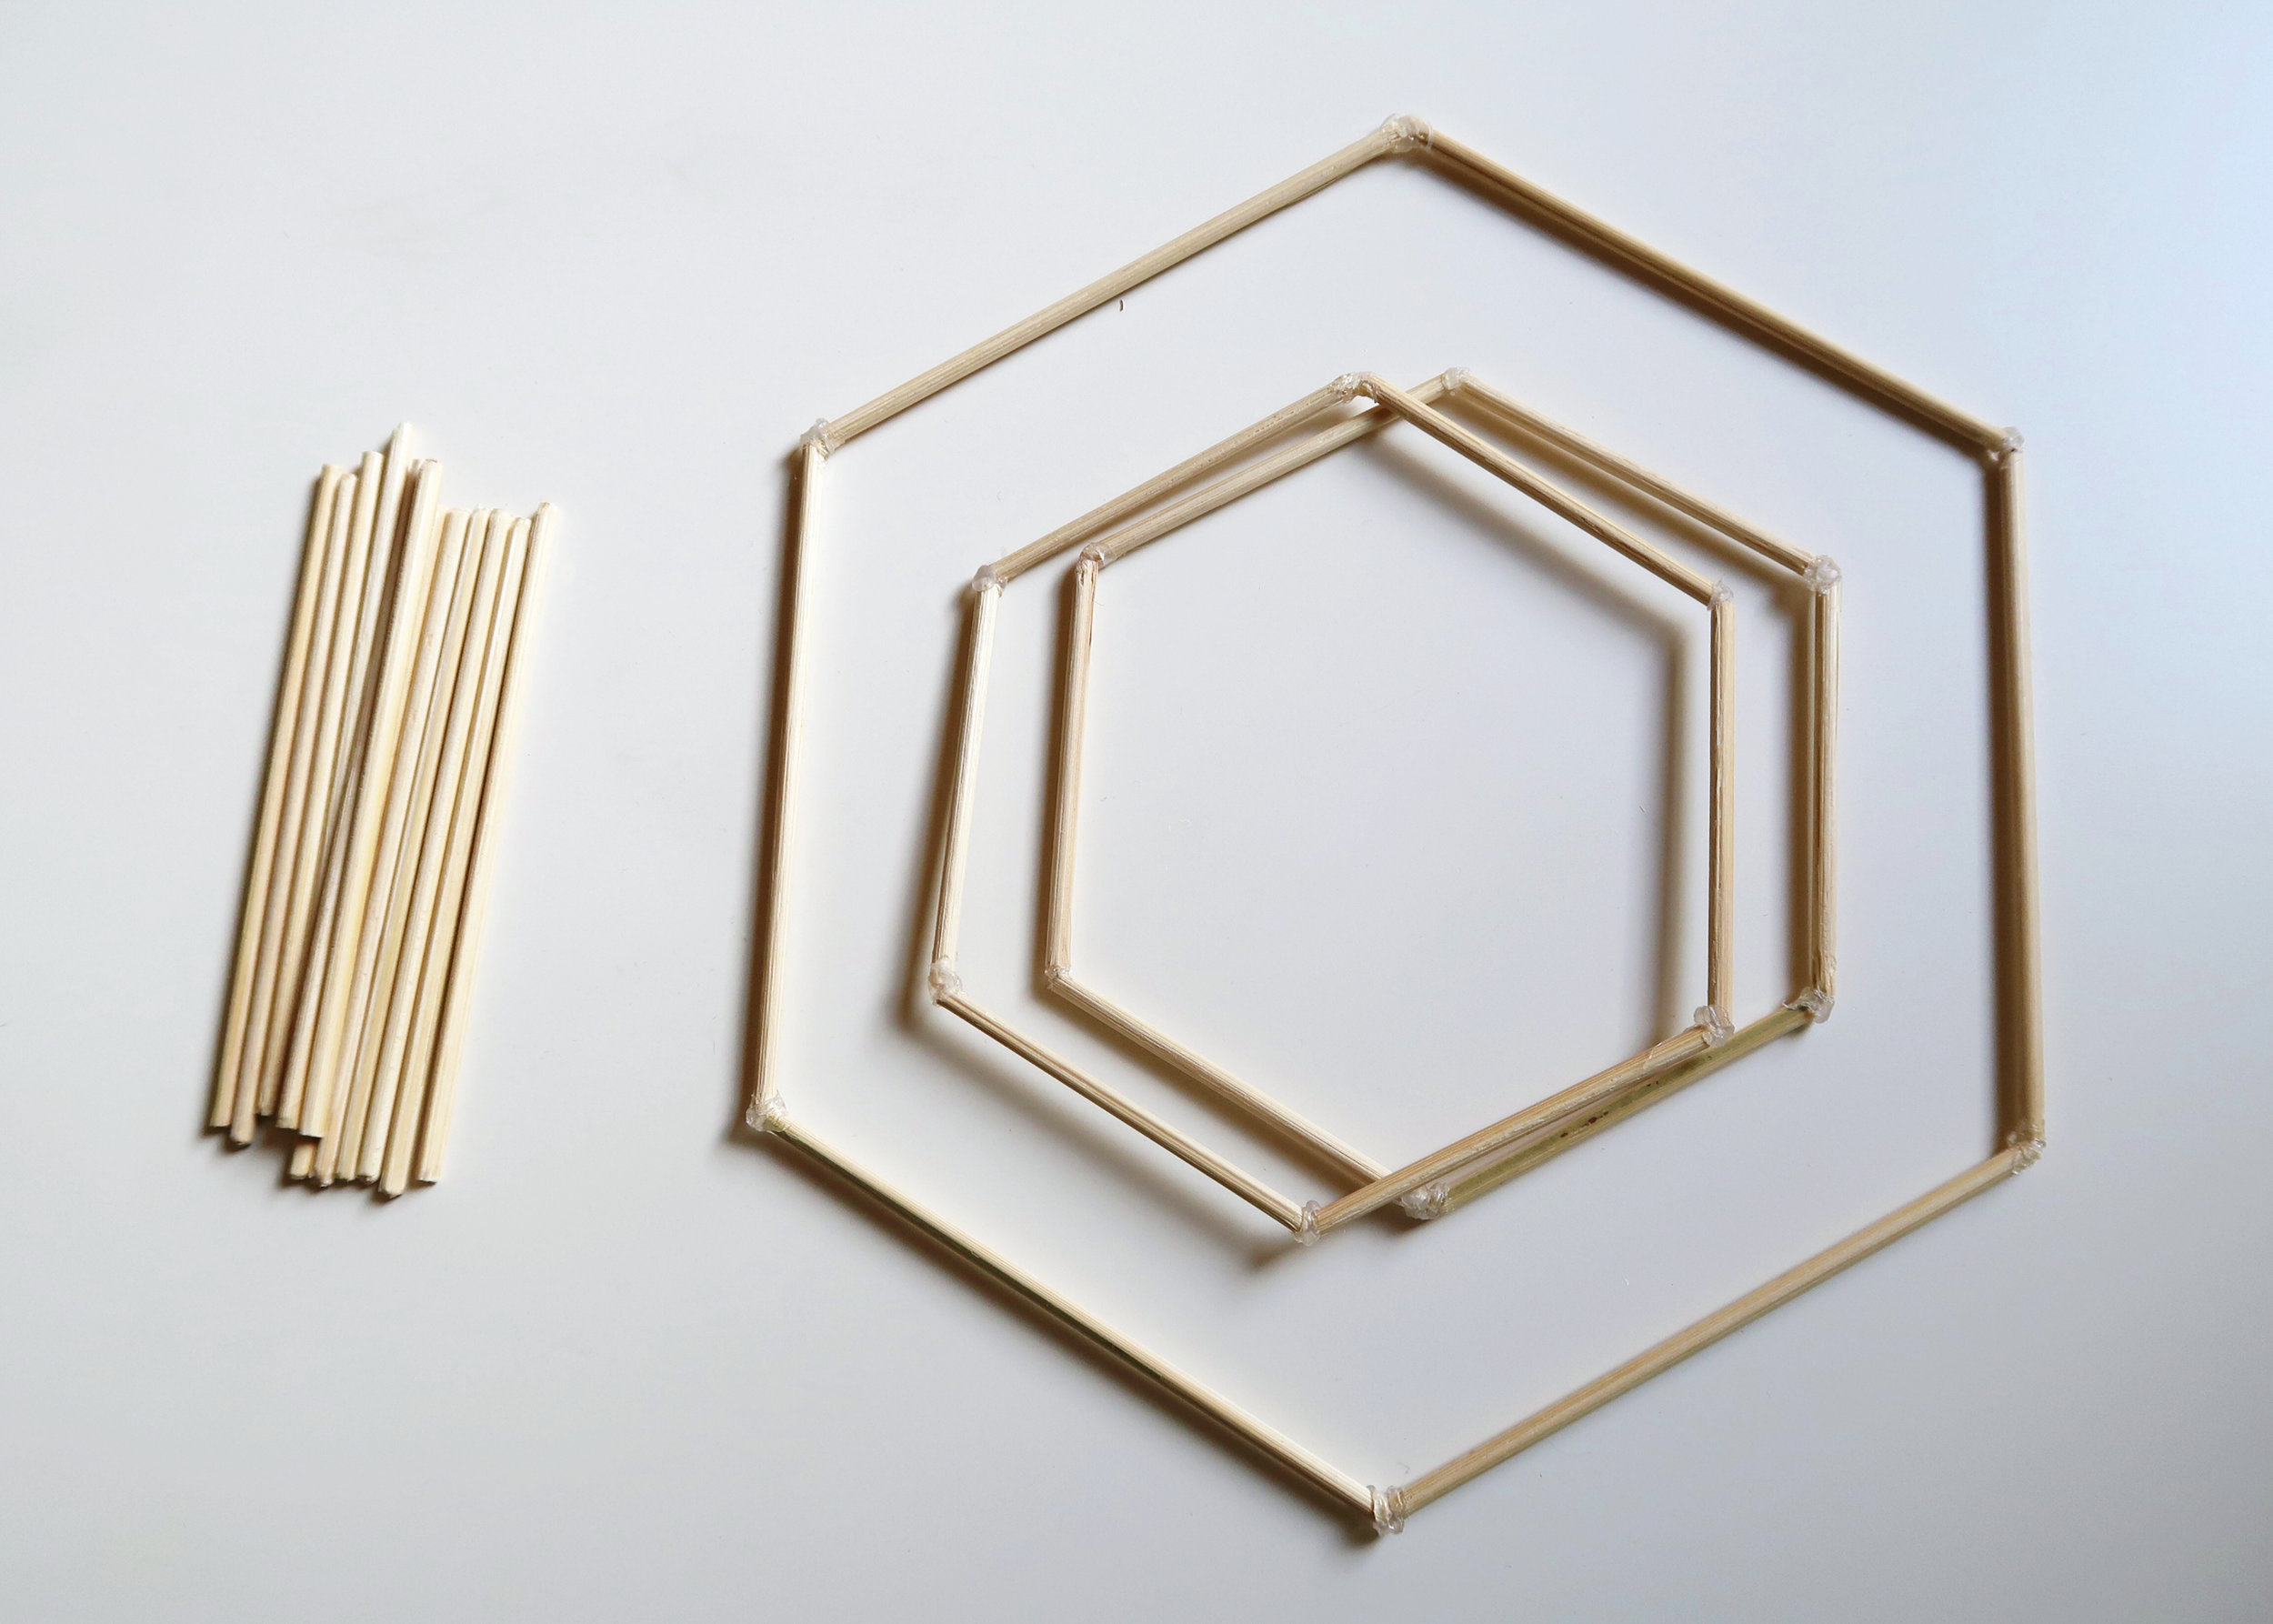 5. - At this point you should have one large hexagon, two smaller hexagons, one miniature hexagon and twelve 10cm skewers. If you do, you're ready to assemble!